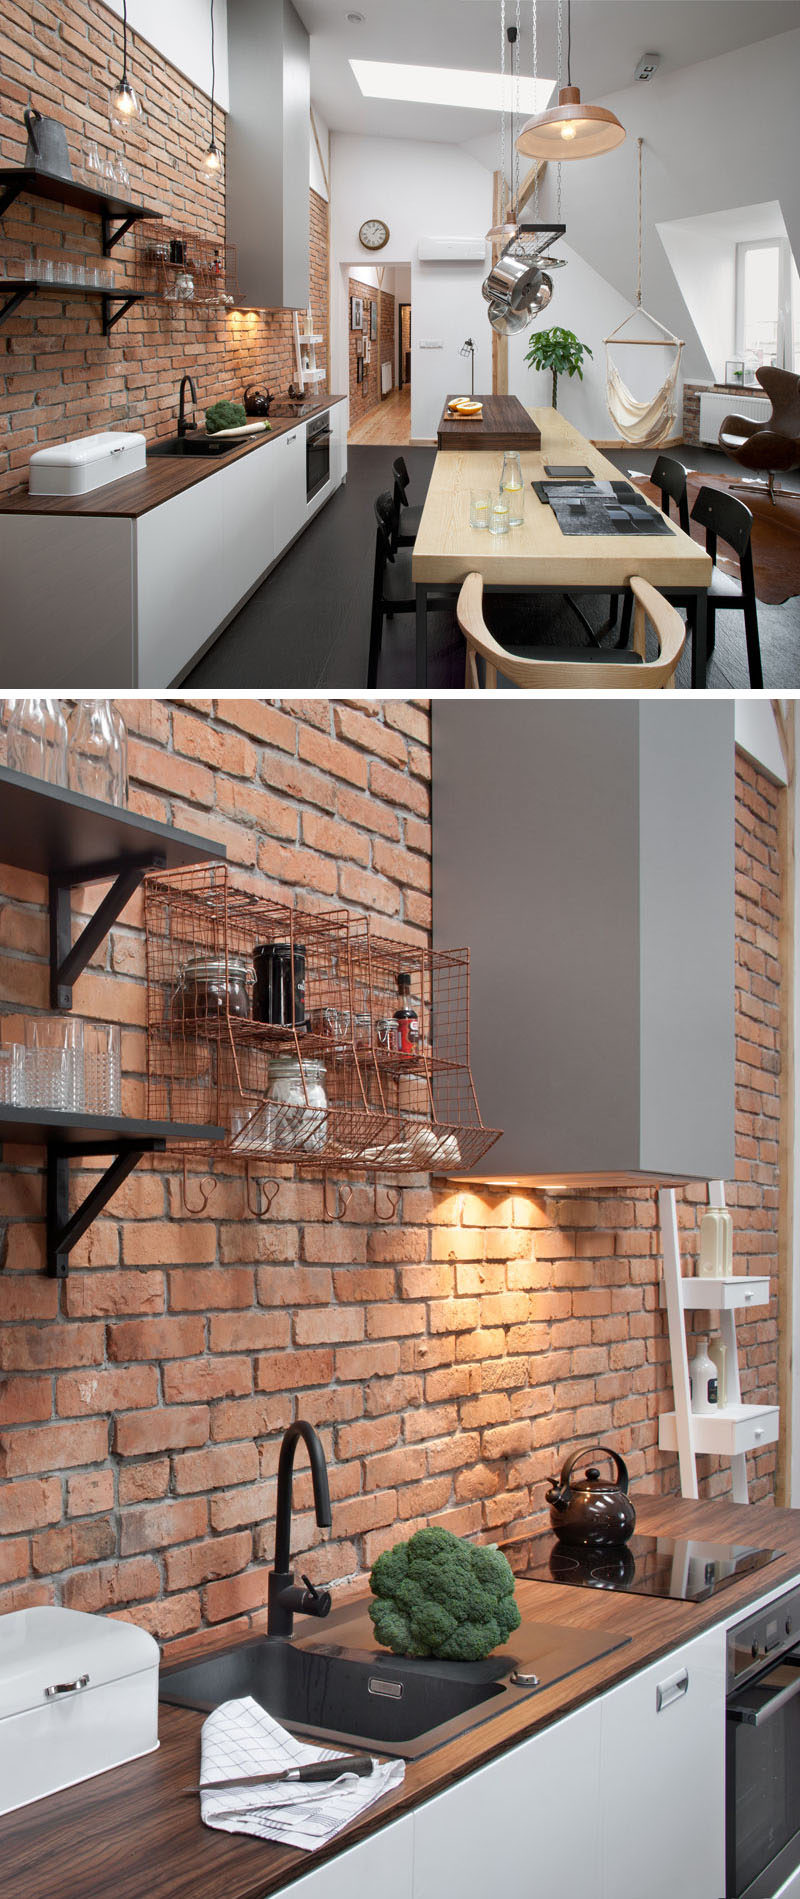 Throughout the apartment there are bright white walls, touches of brick and wood, which all pair nicely with the wood and dark charcoal gray tiled flooring.